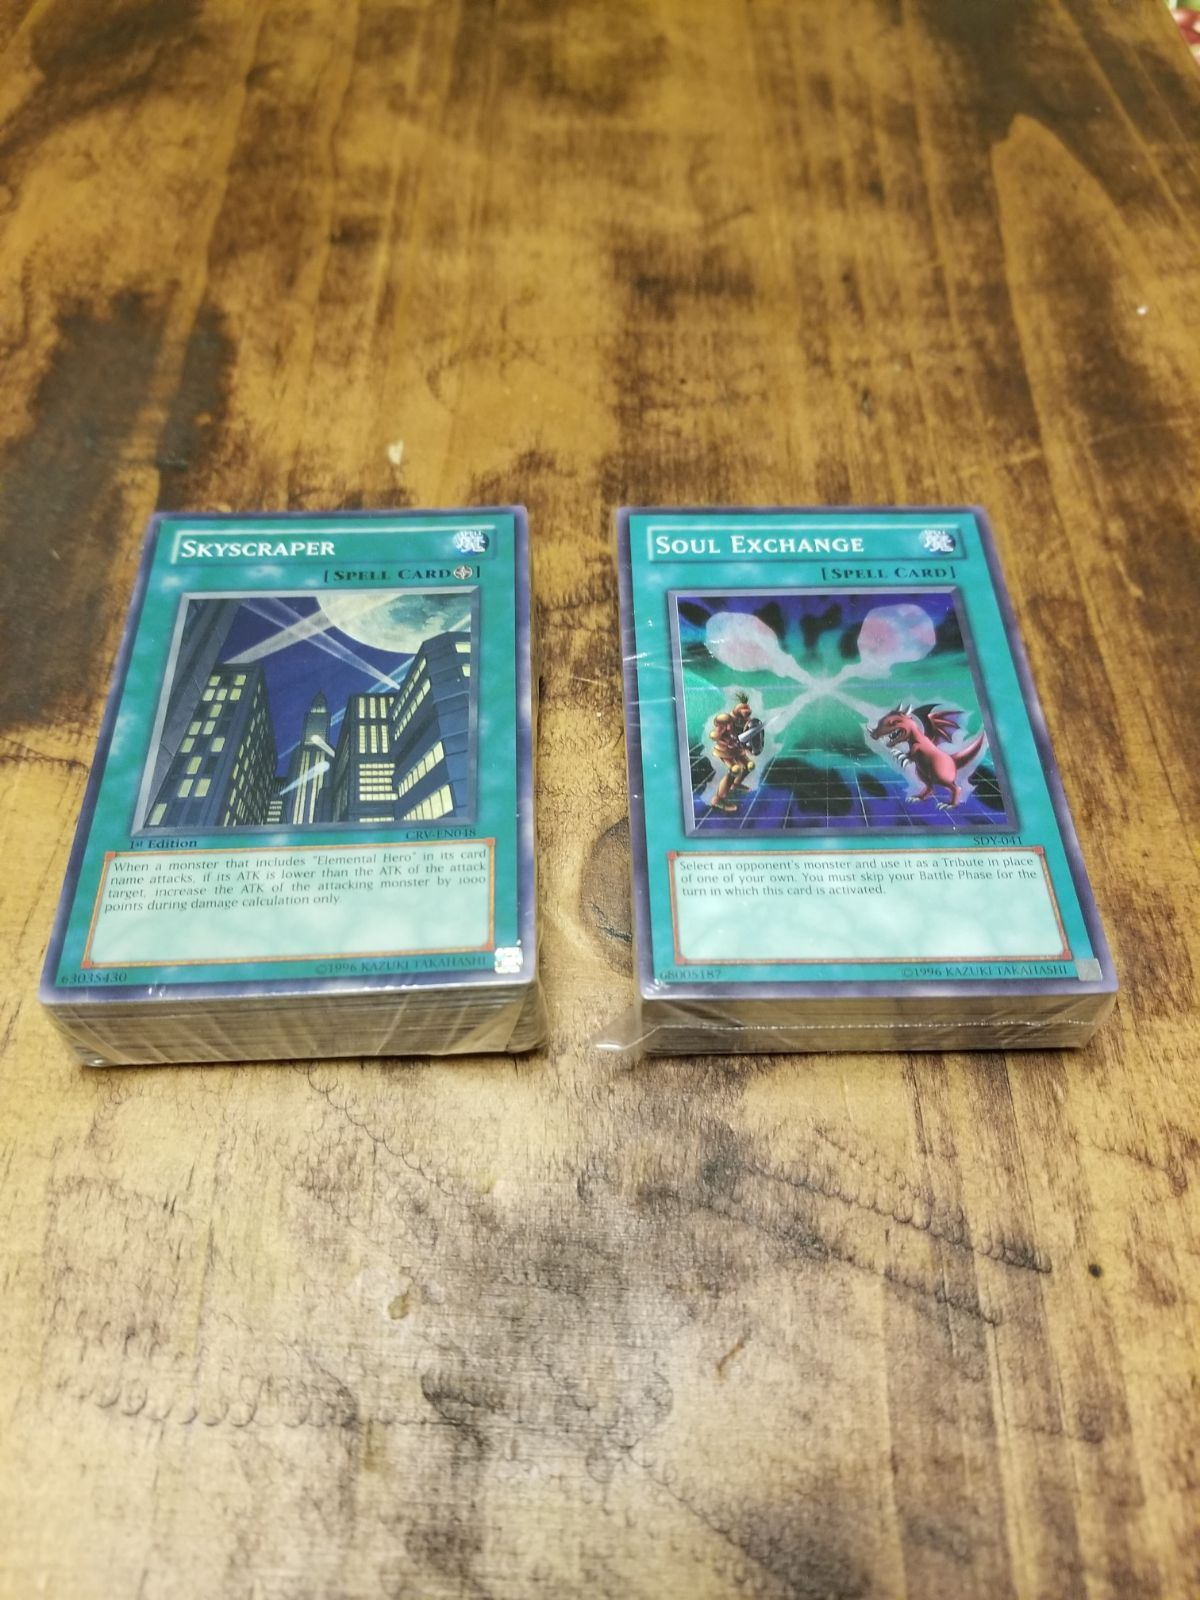 48 yugioh spell cards 4 holo cards included they are in